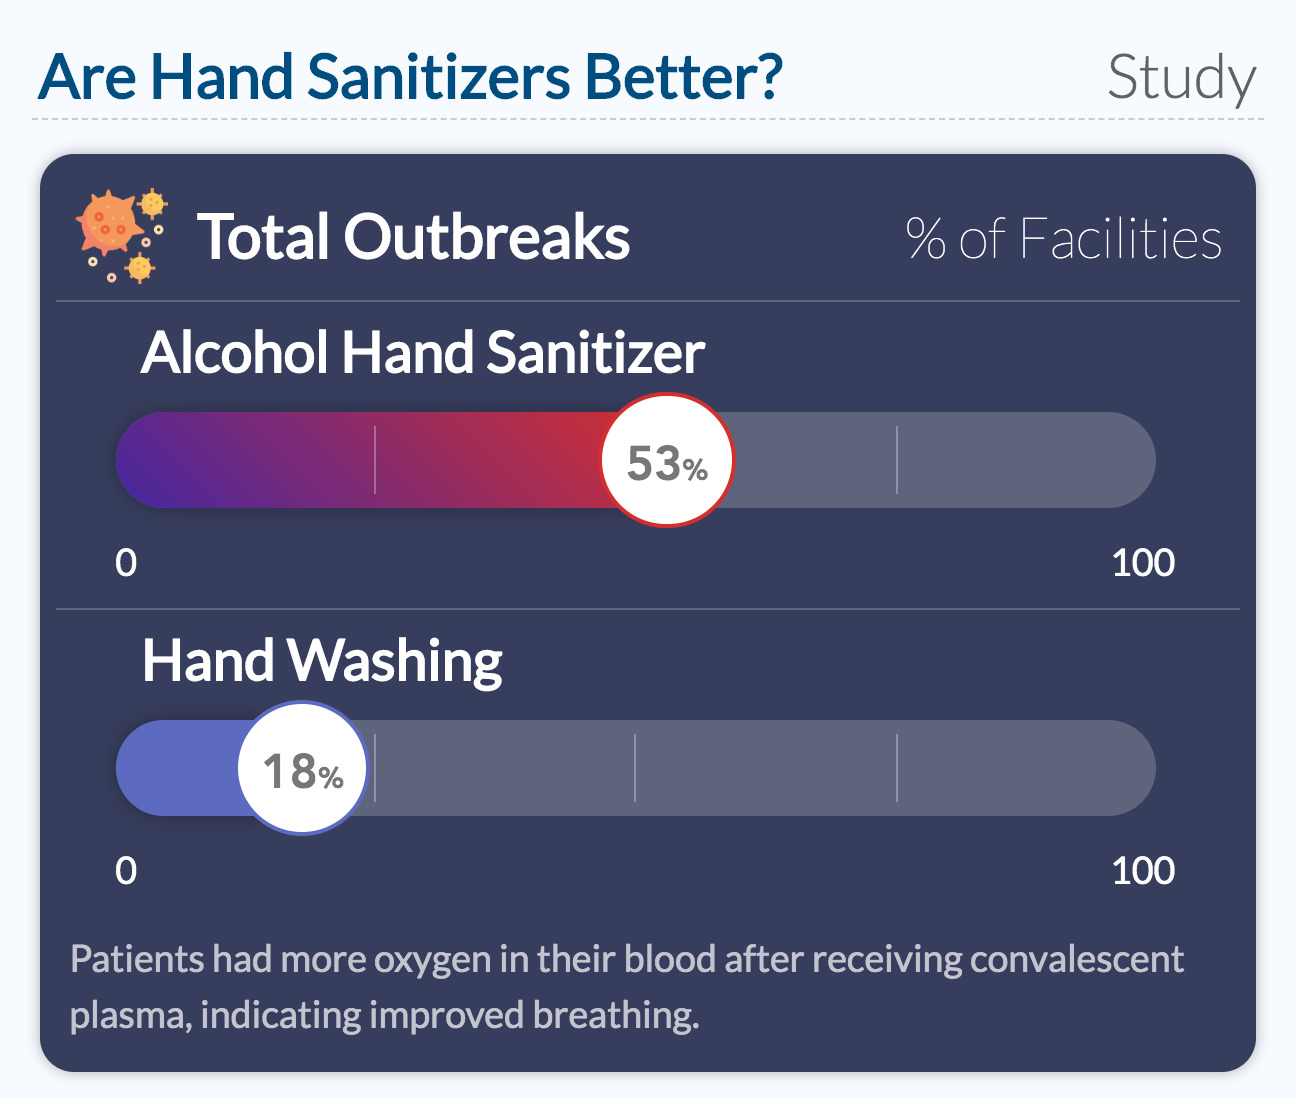 Are Hand Sanitizers Better?